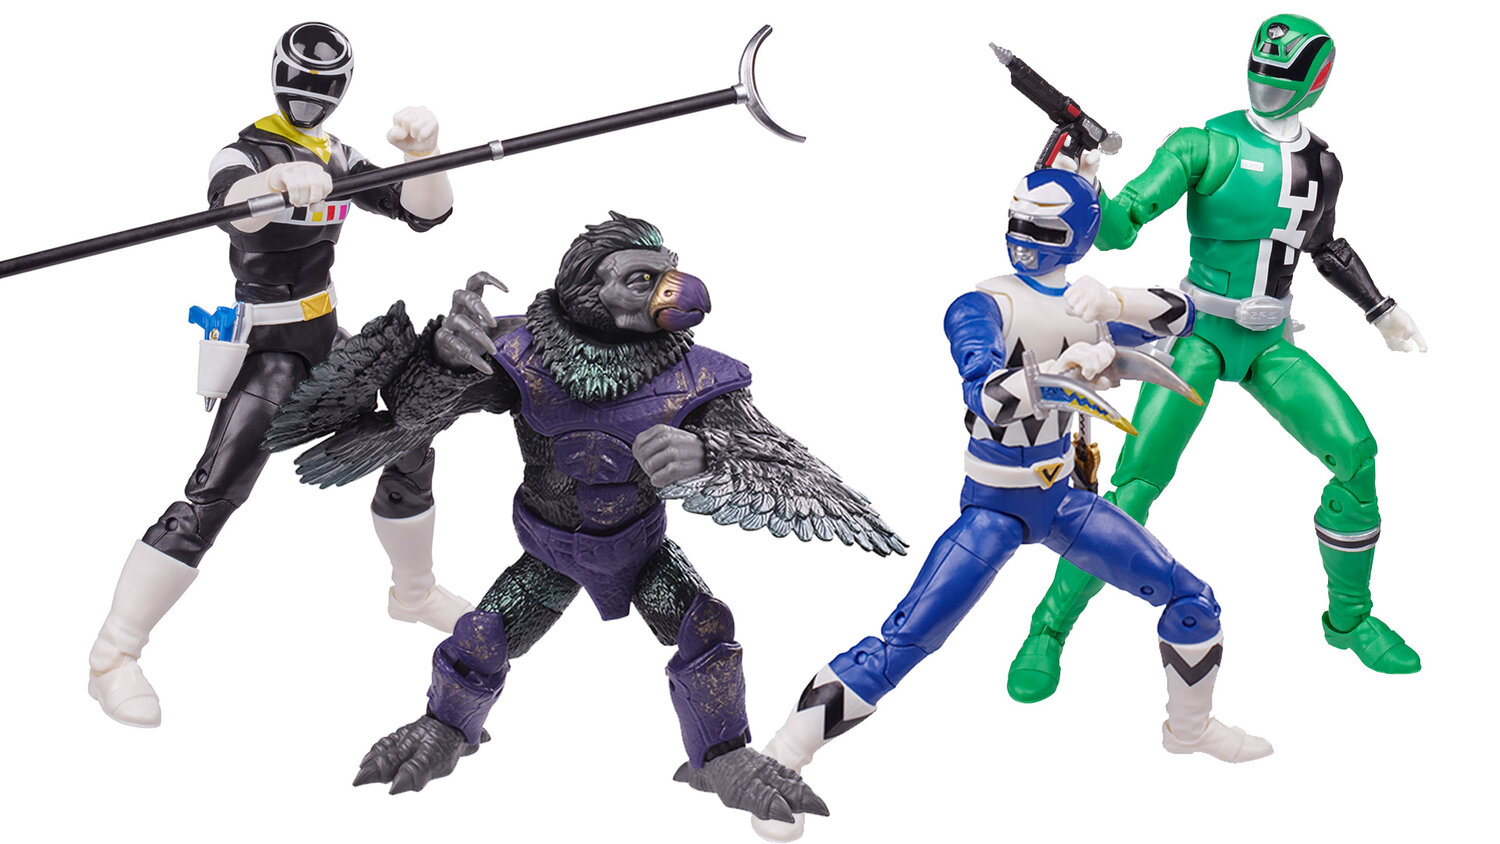 POWER RANGERS Lightning Wave 9 Officially Announced and New DINO FURY Zord Toys Shown Off — GeekTyrant